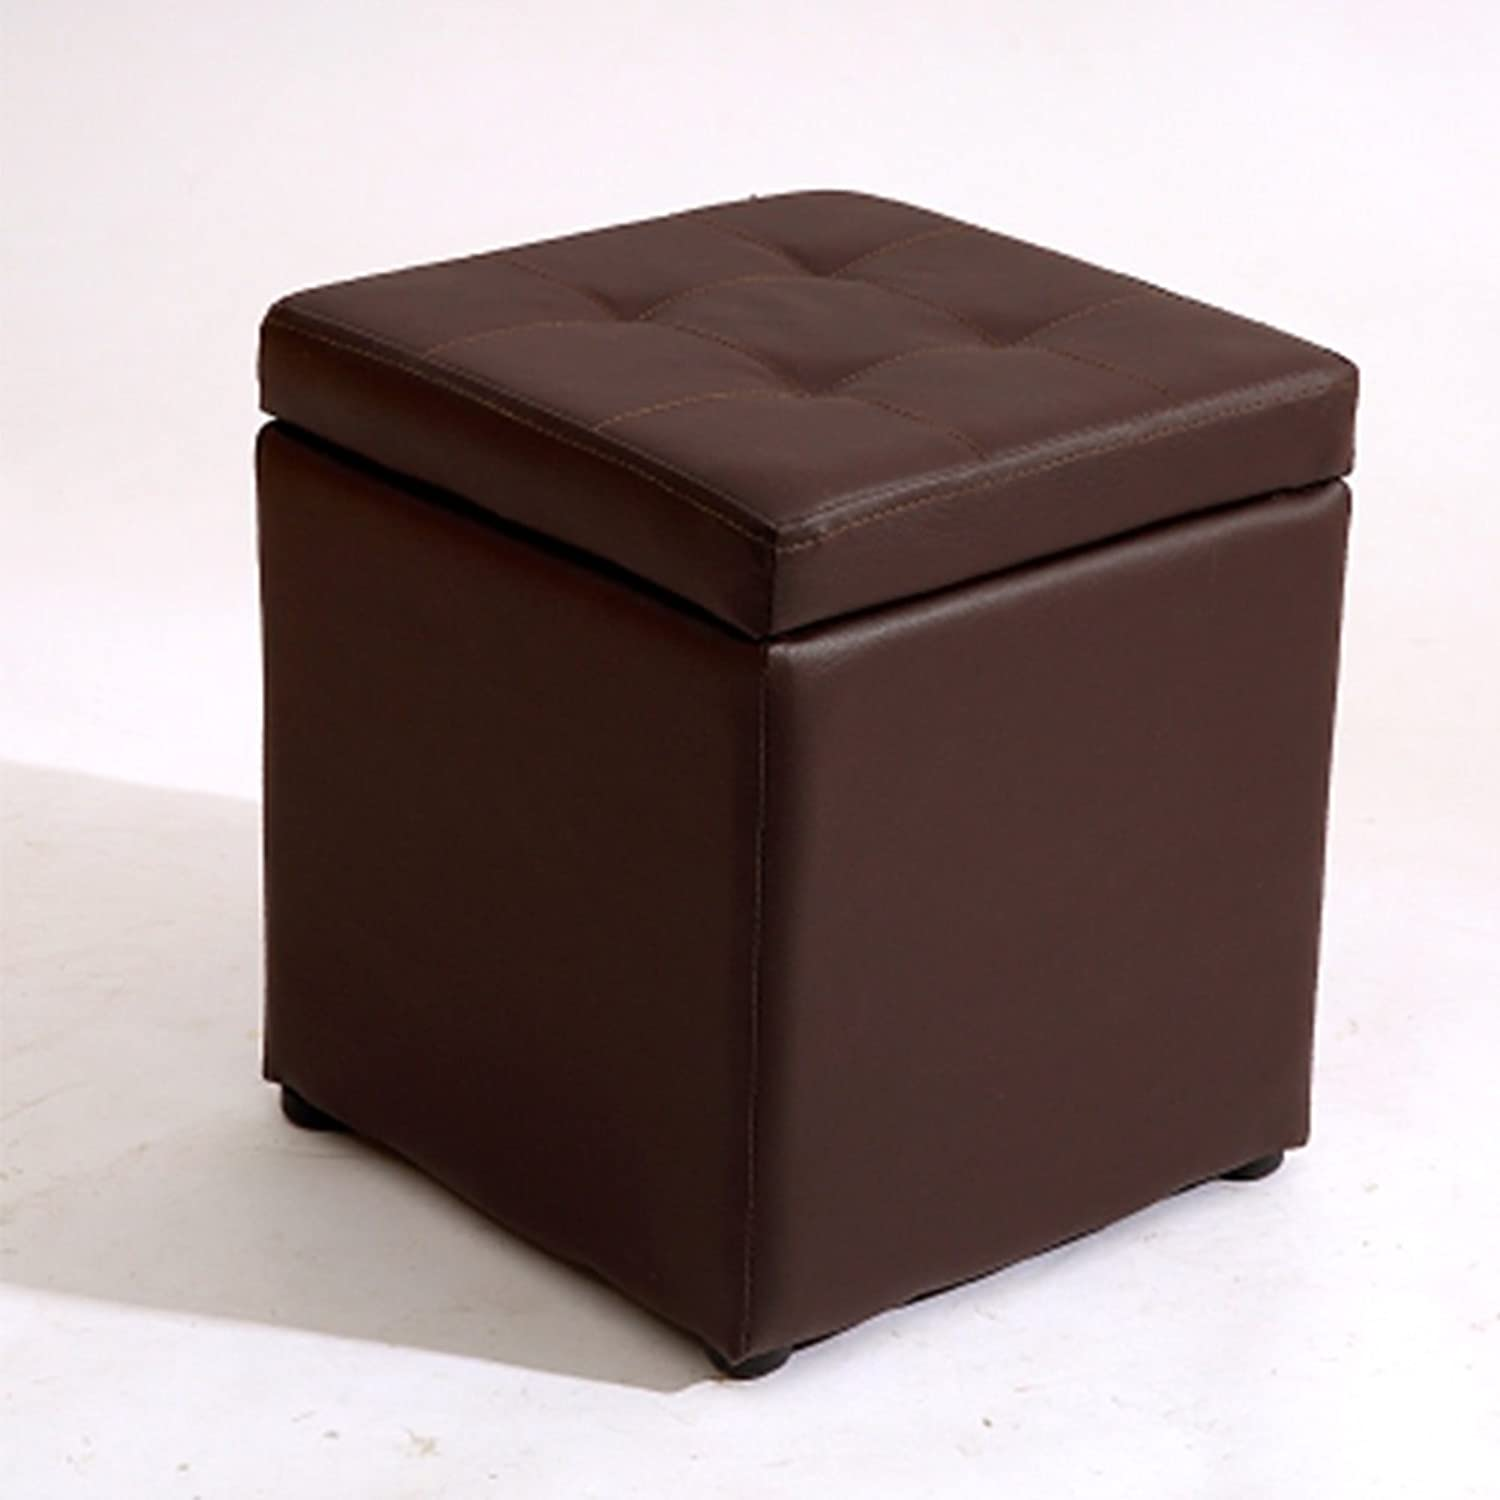 FORWIN US Stool- Stool Cubes bluee Wooden Storage Stool shoes Stool Small Artificial Leather Hall Foyer Stools Sofa Stool Finishing Box 30 X 30 X 35 cm Stool (color   Brown)